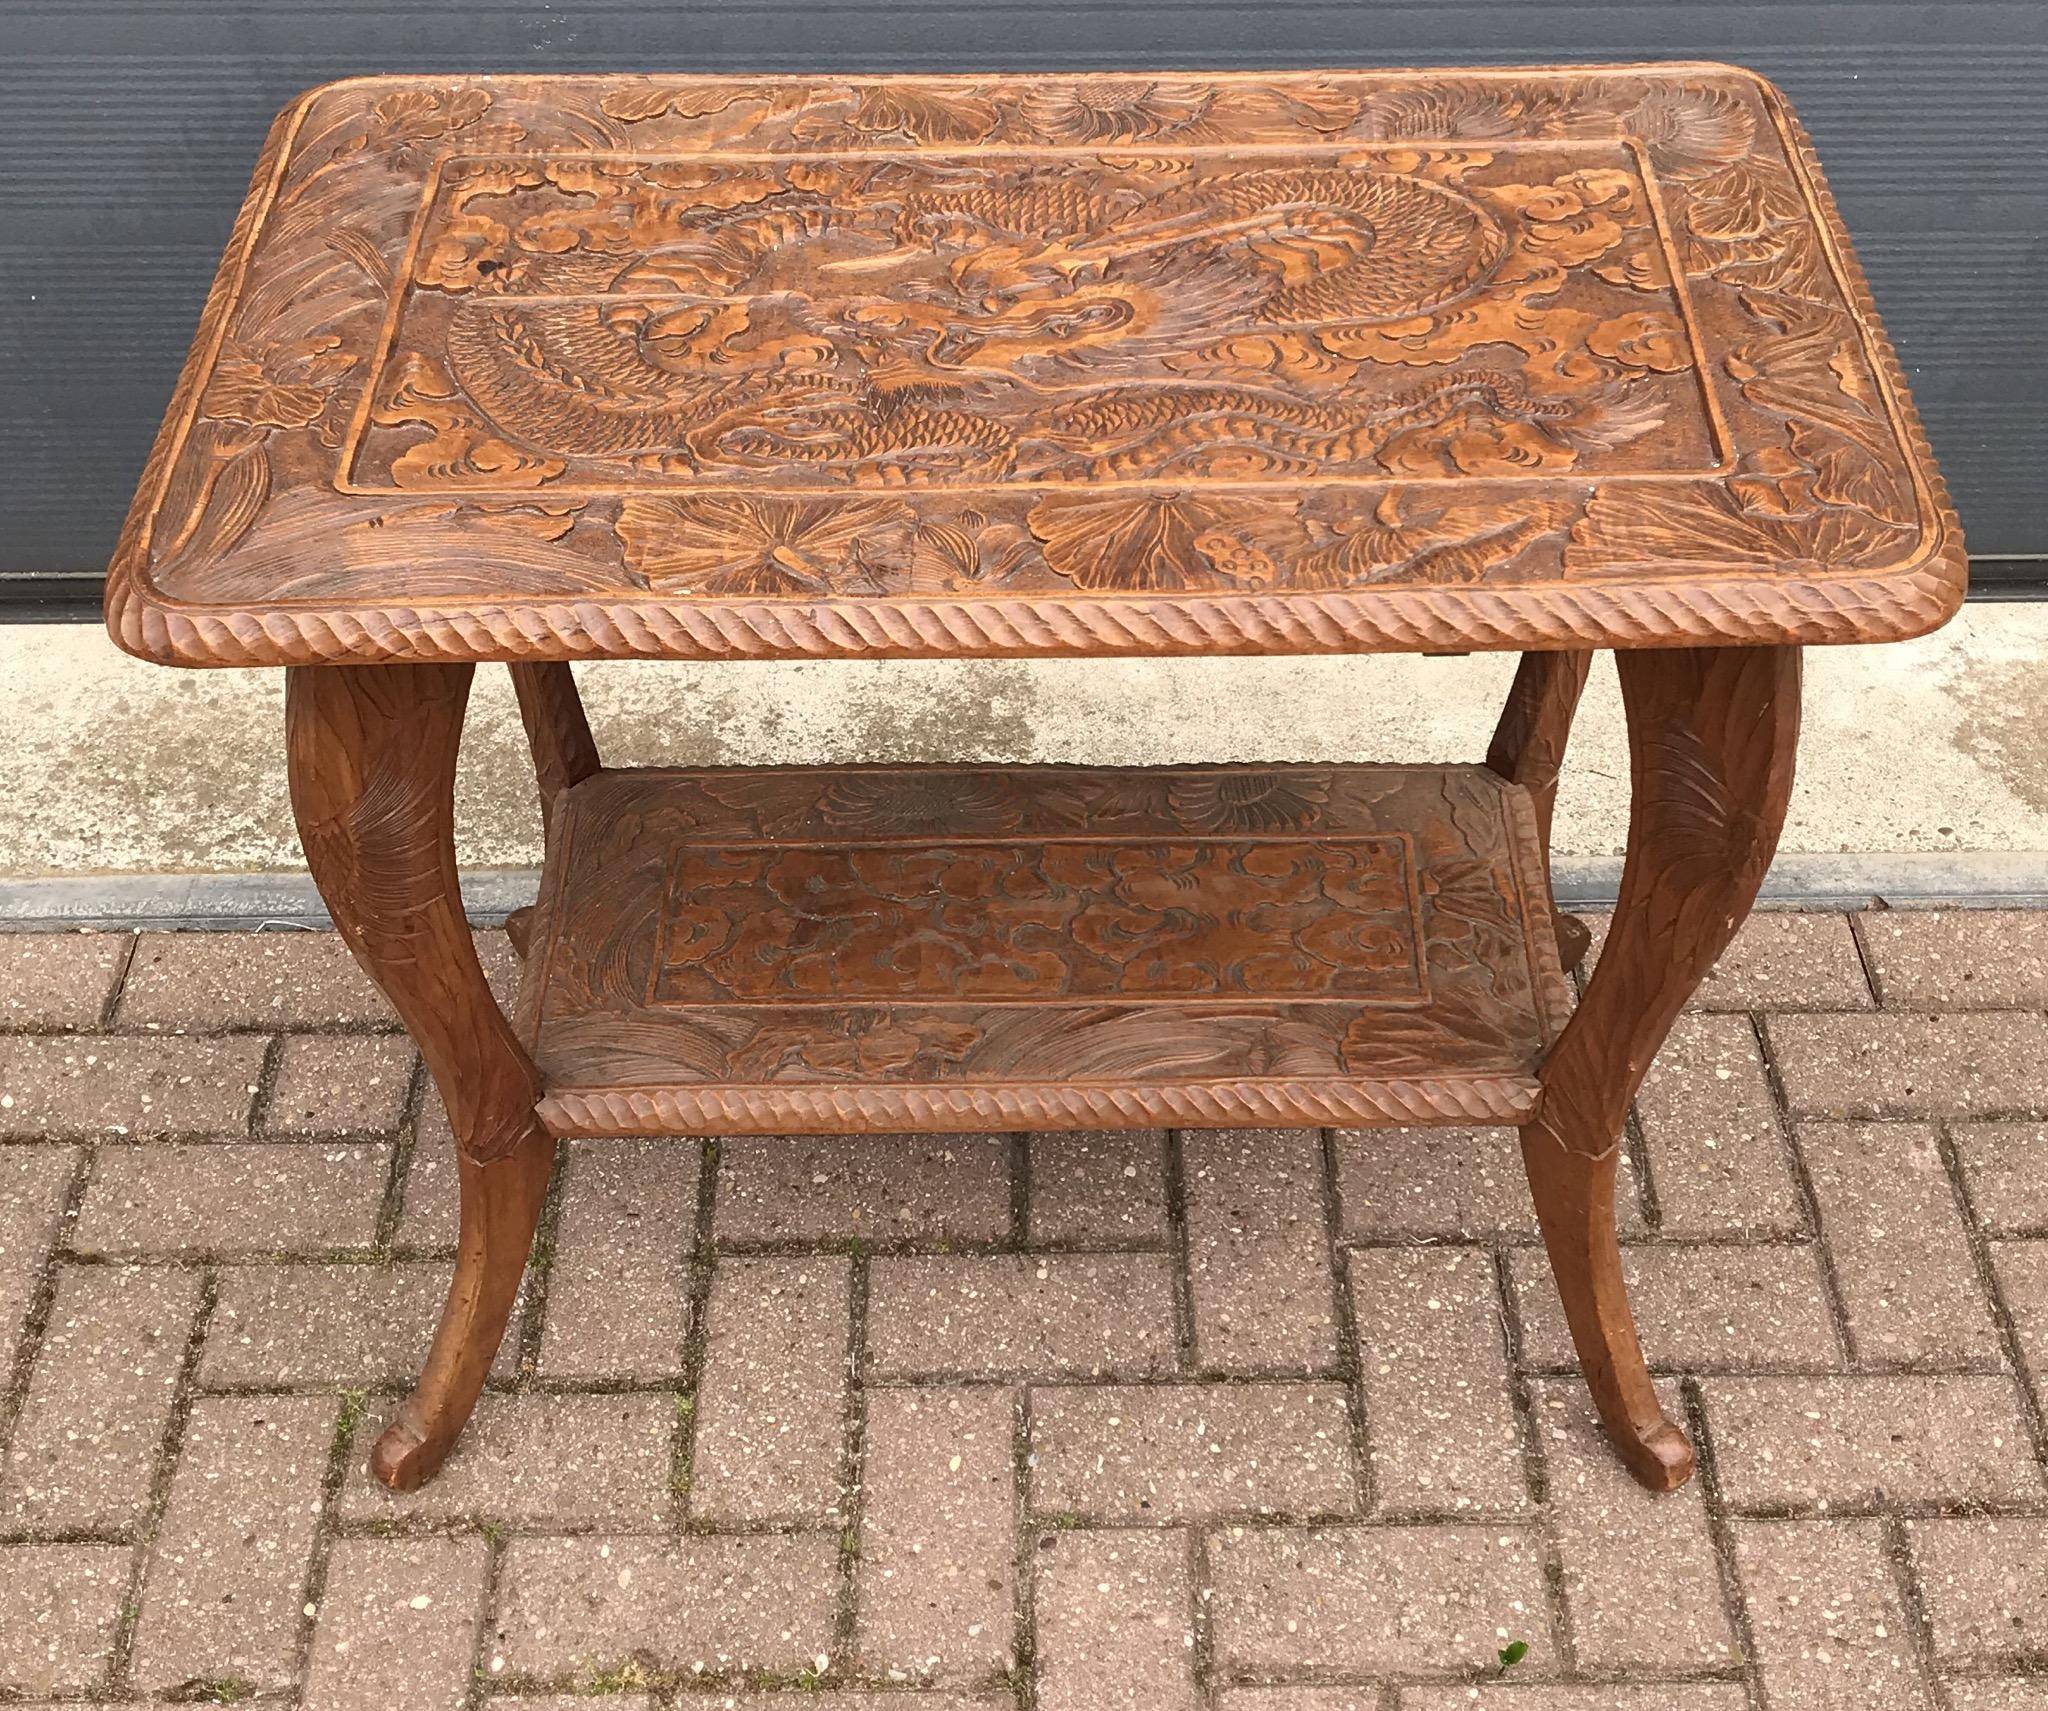 Art Nouveau Carved Wood Table With Sunflowers And Dragon From Europeantiqueshop On Ruby Lane